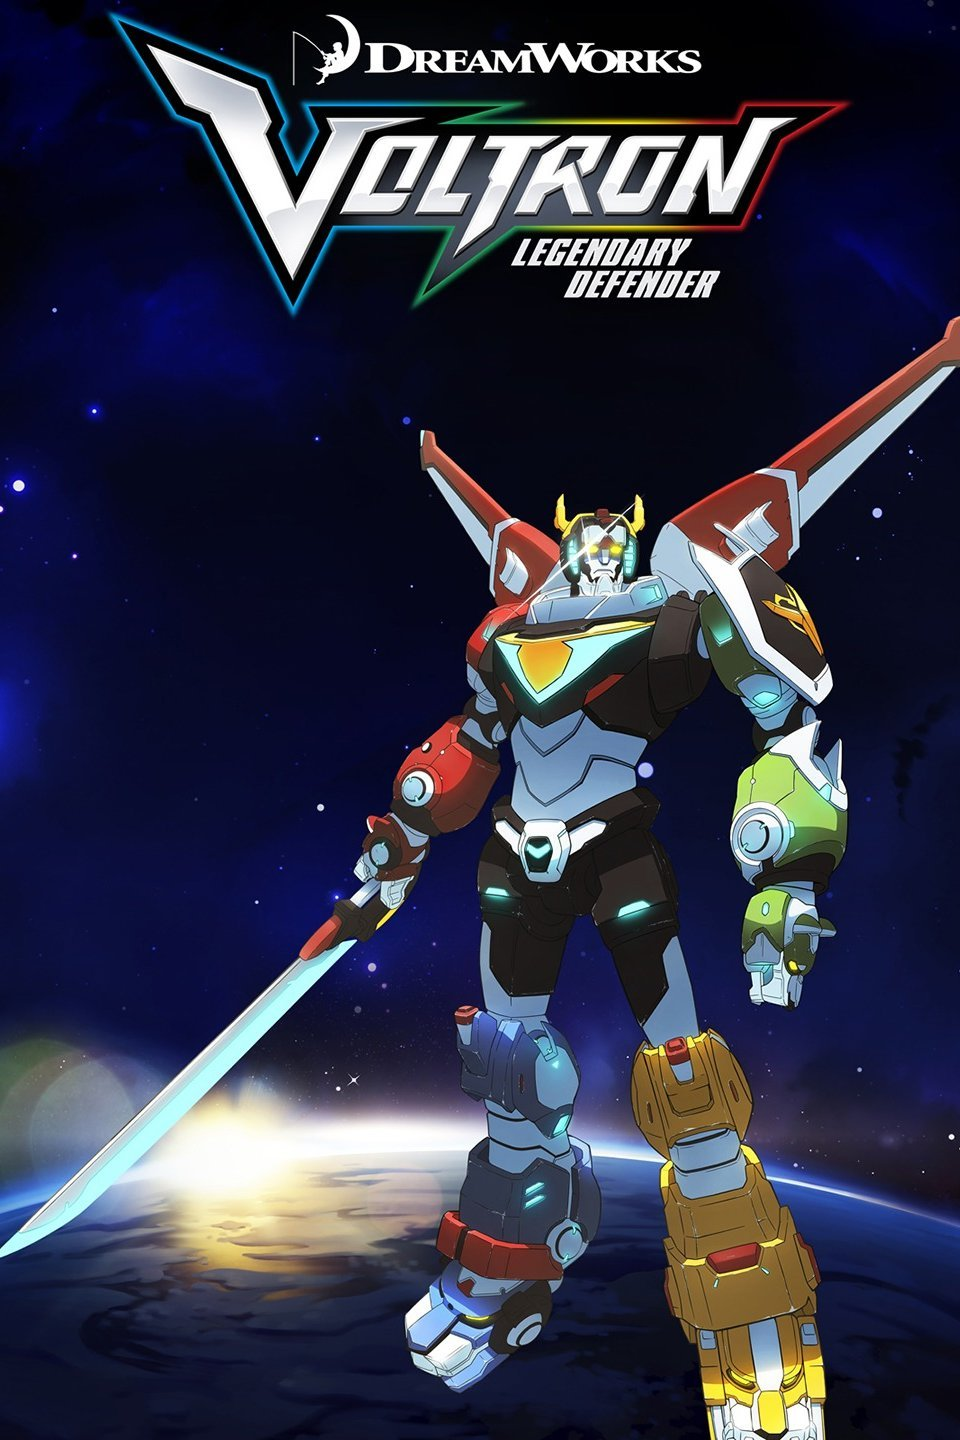 Voltron: Legendary Defender-Voltron: Legendary Defender